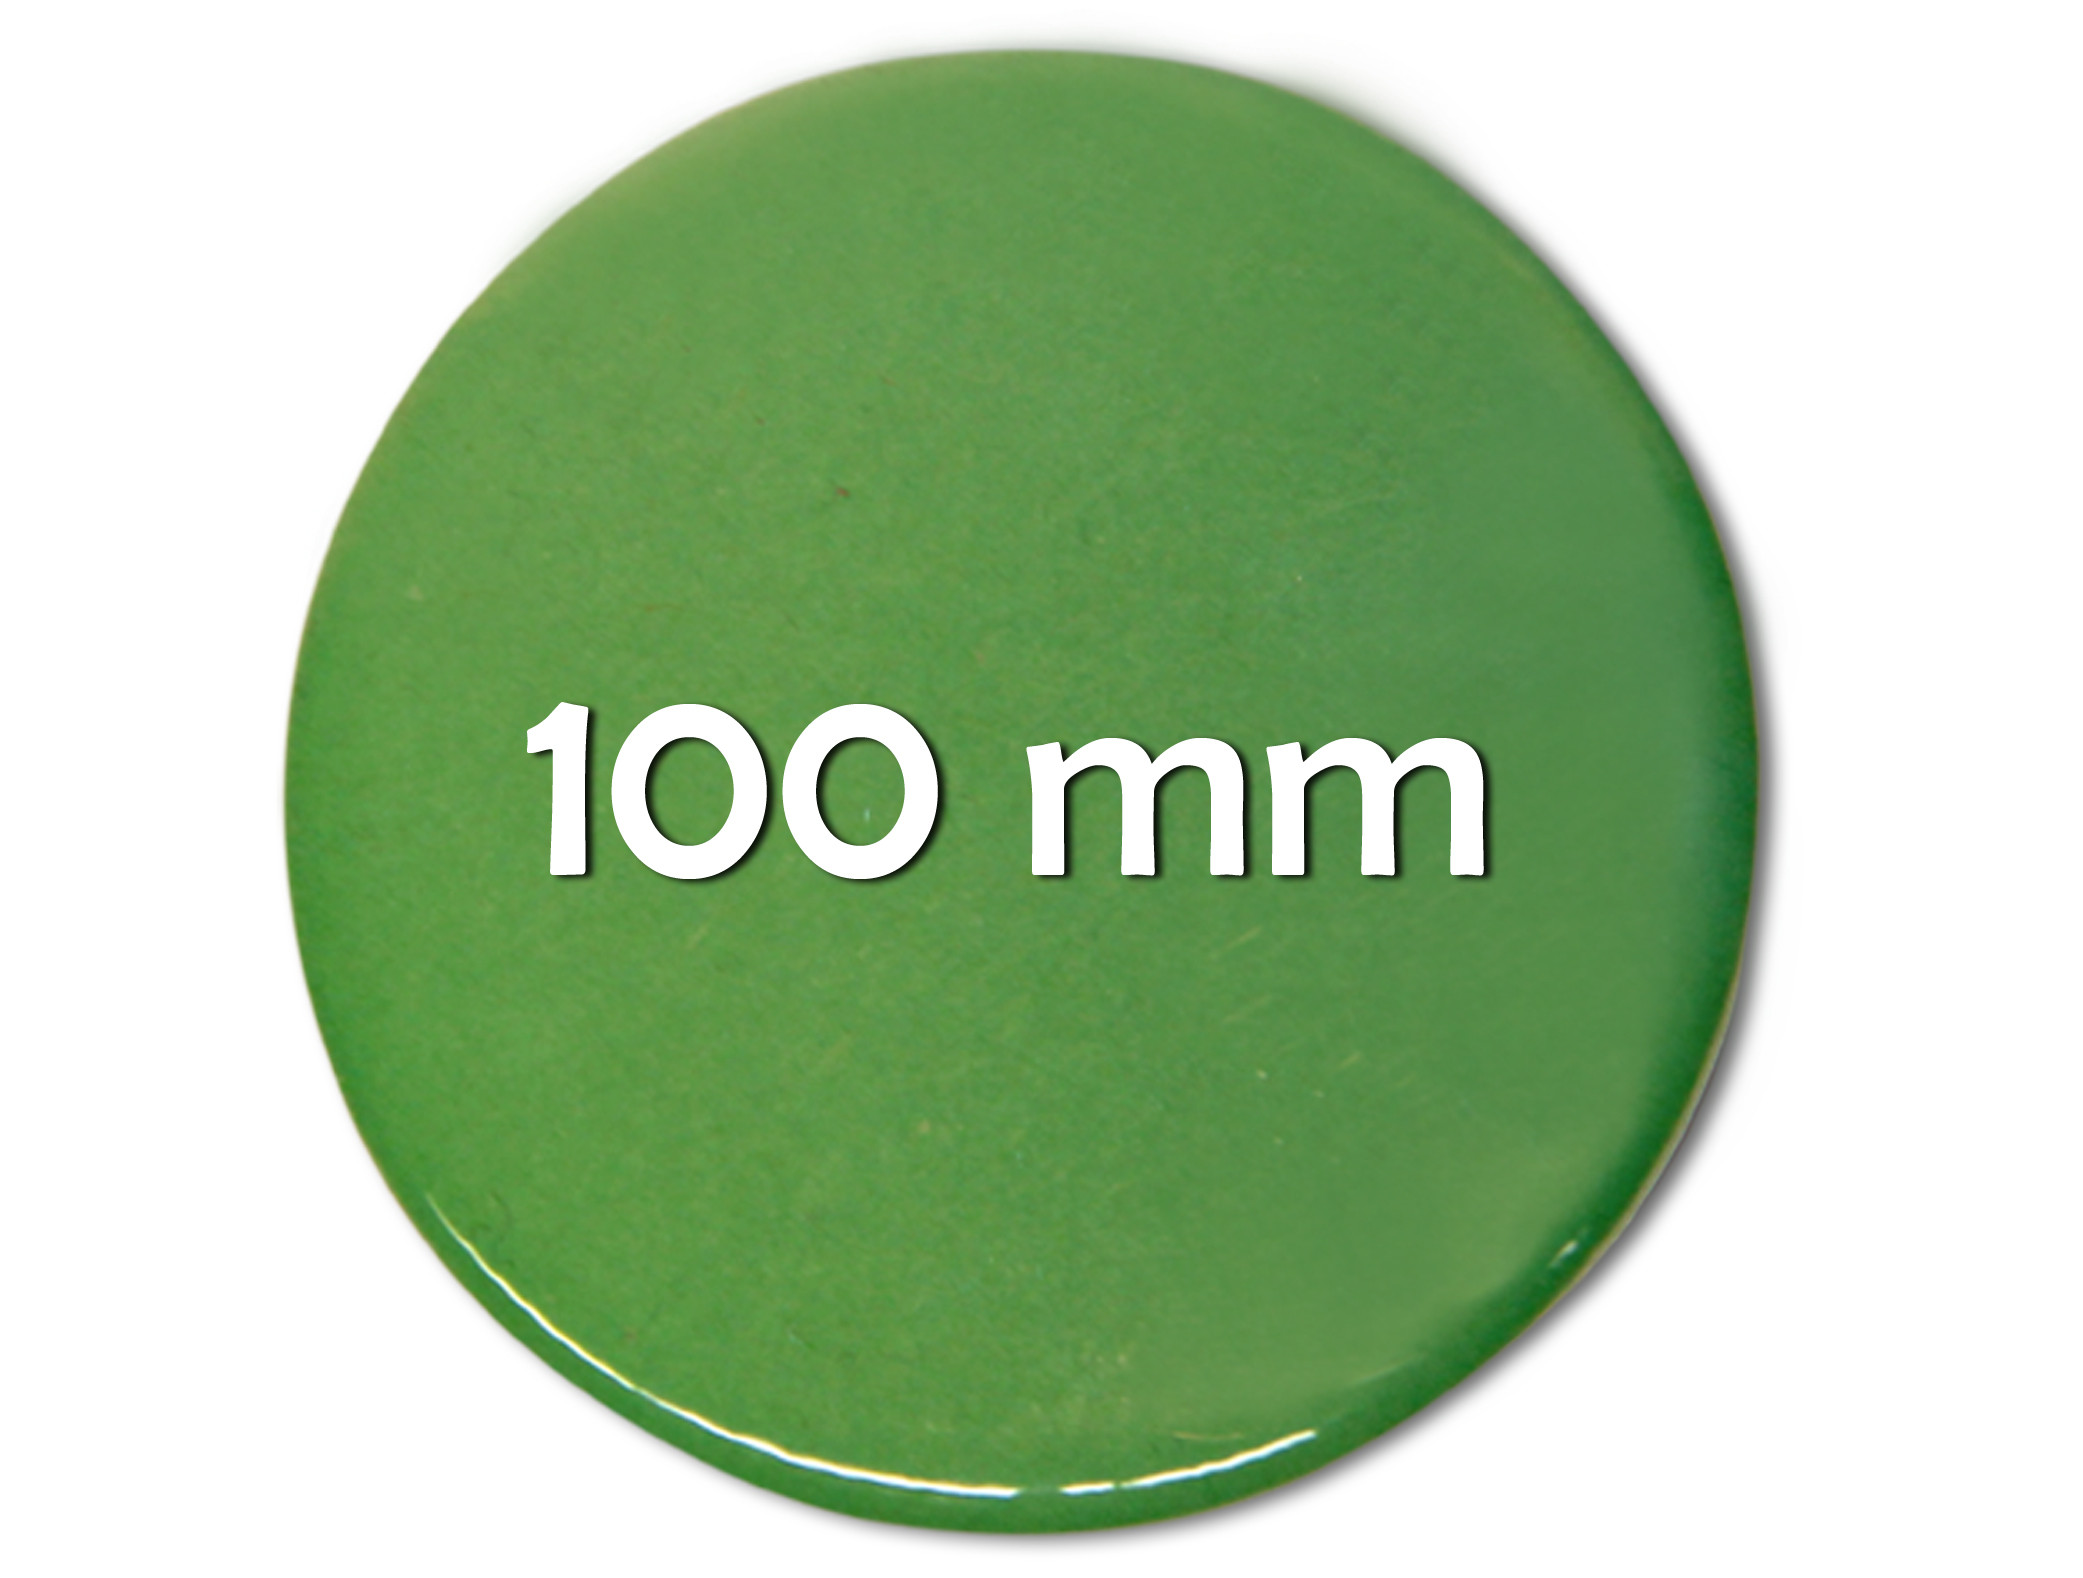 100mm Fertigbutton